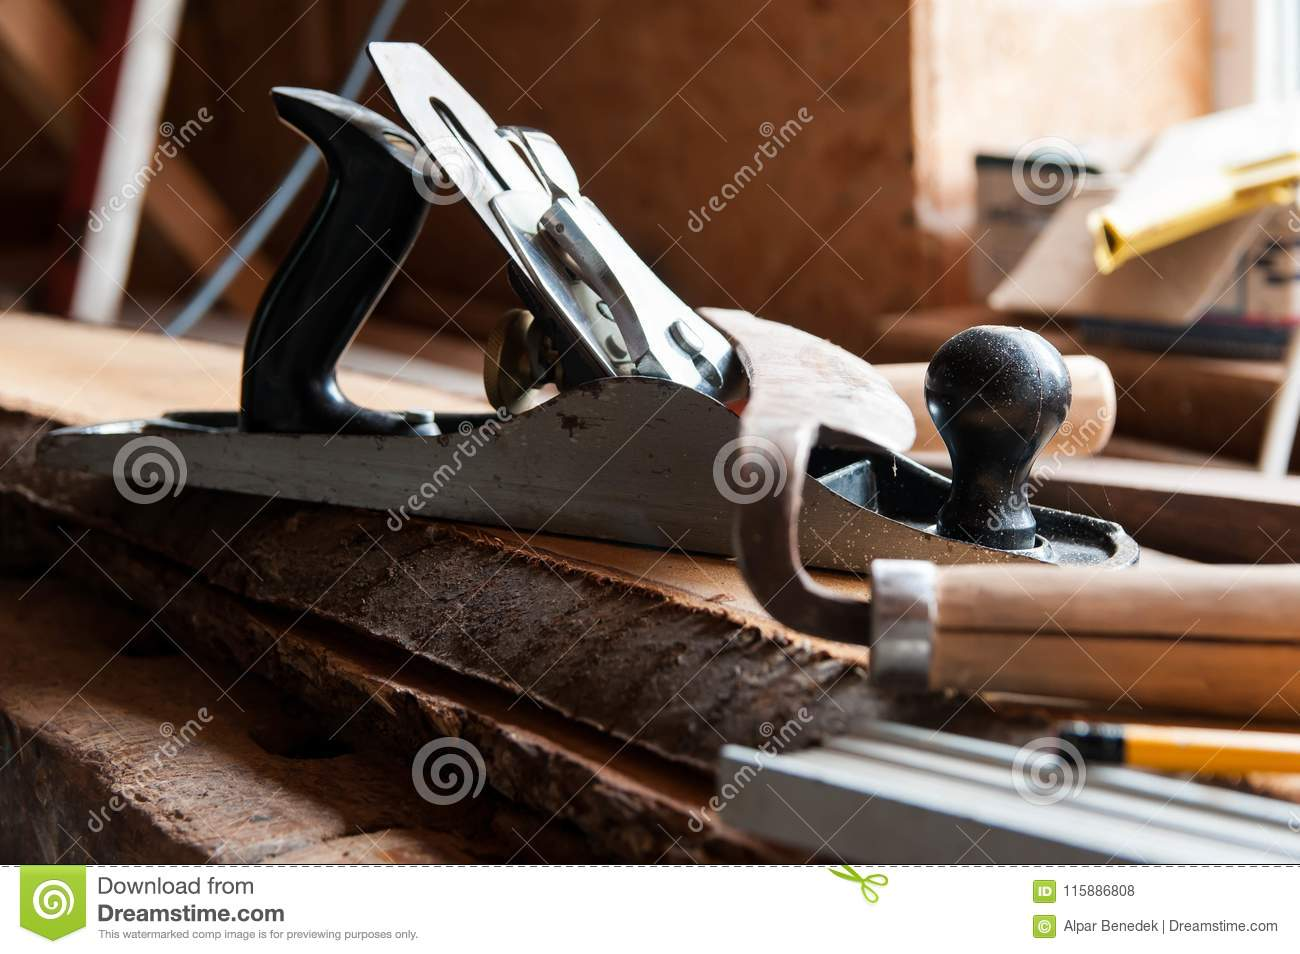 Carpentry tools on wood boards, focus on the plane